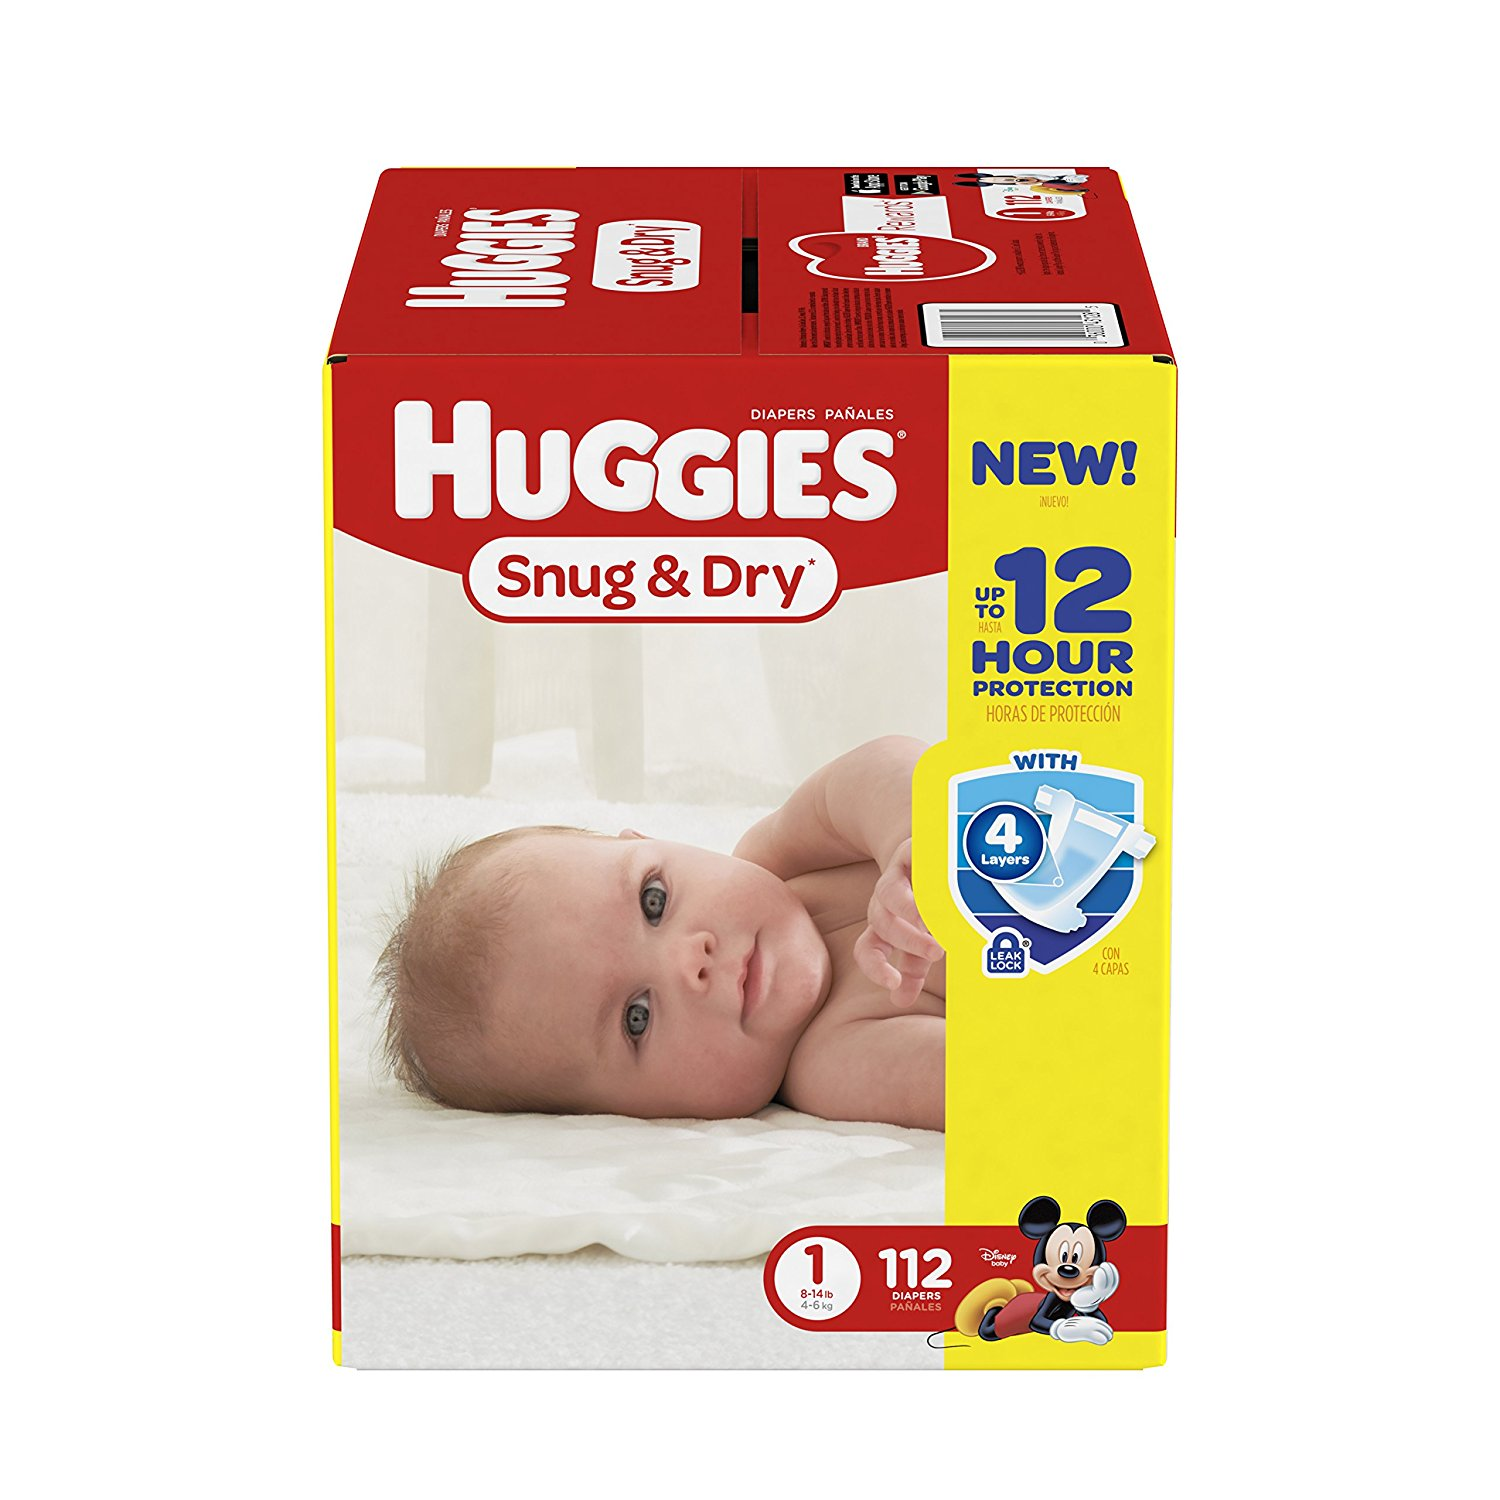 huggies snug & dry diapers, disposable diapers, best disposable diapers